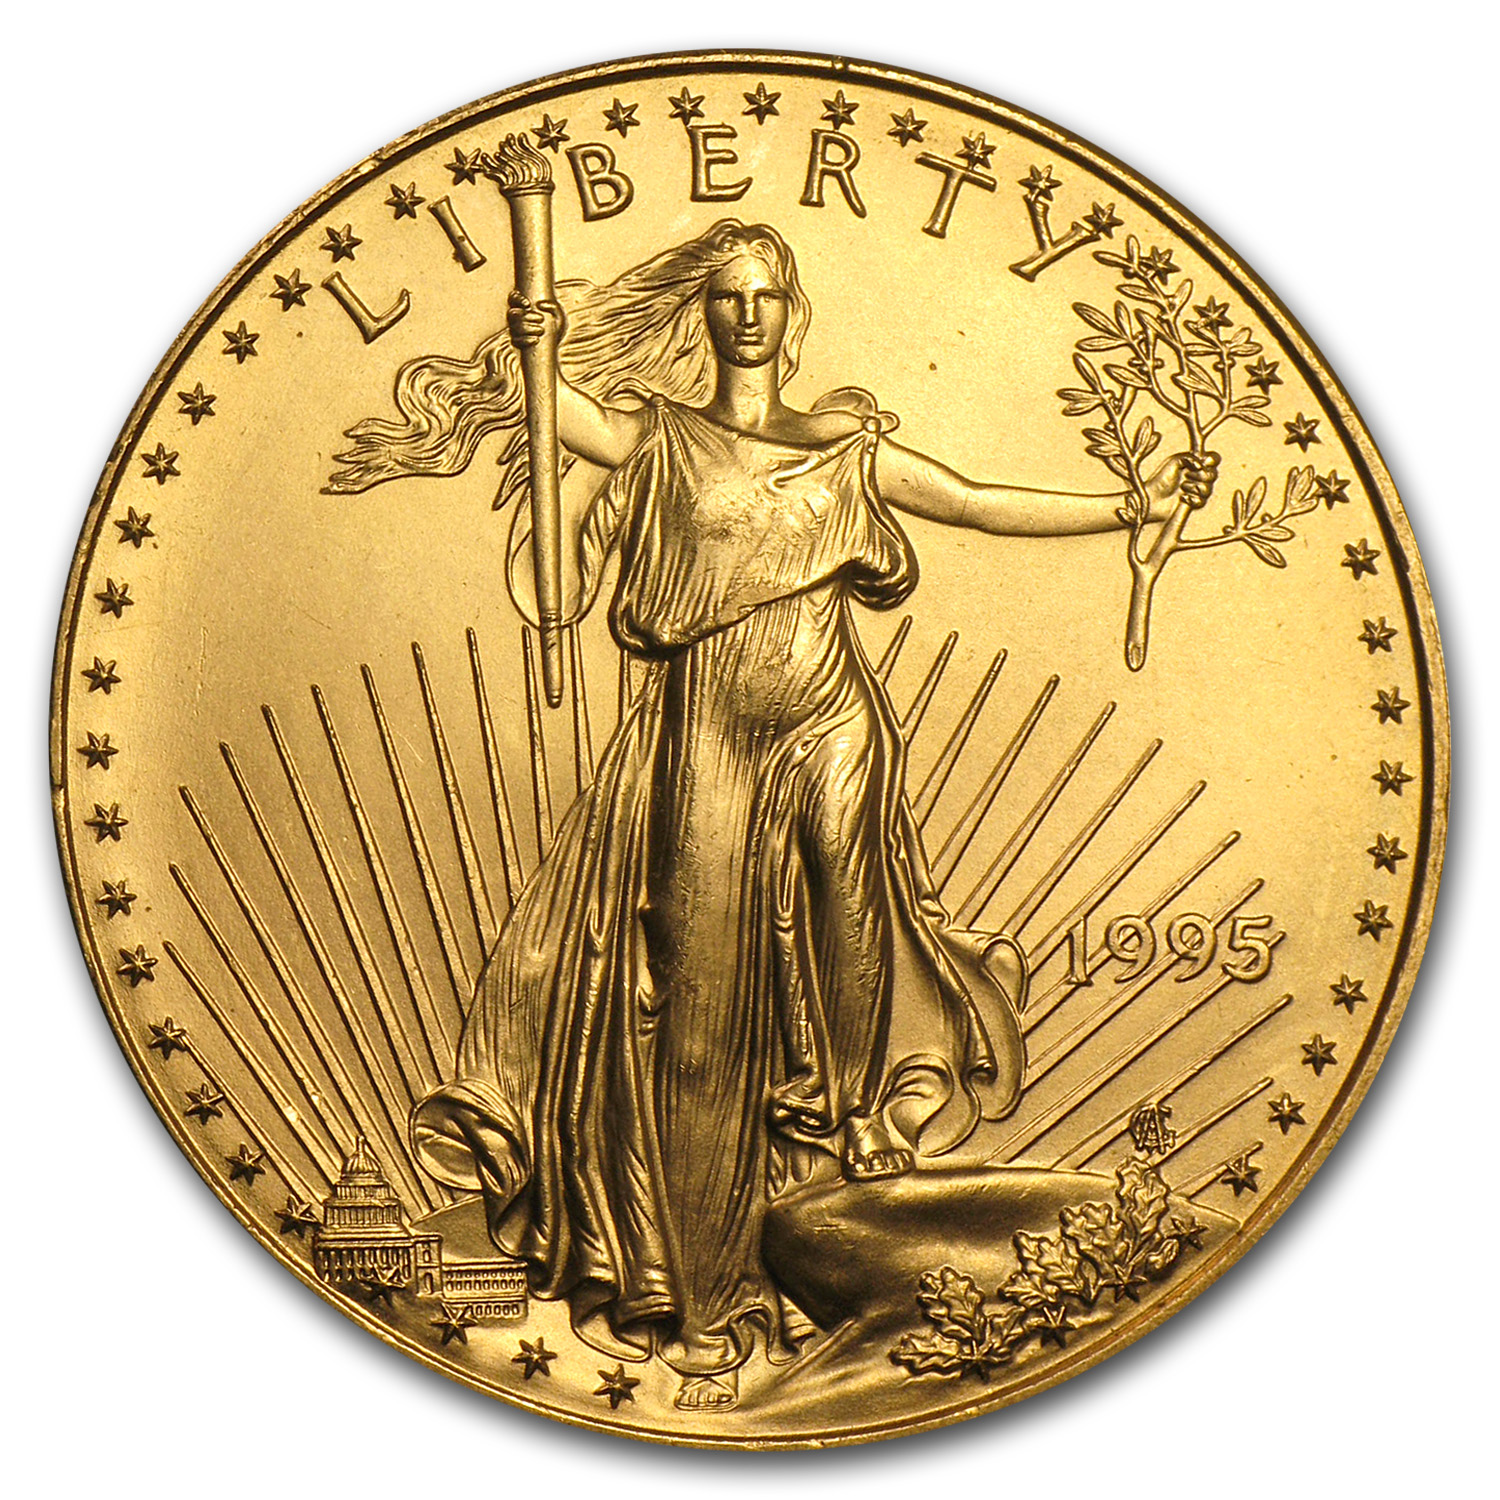 1995 1 oz Gold American Eagle (BU)